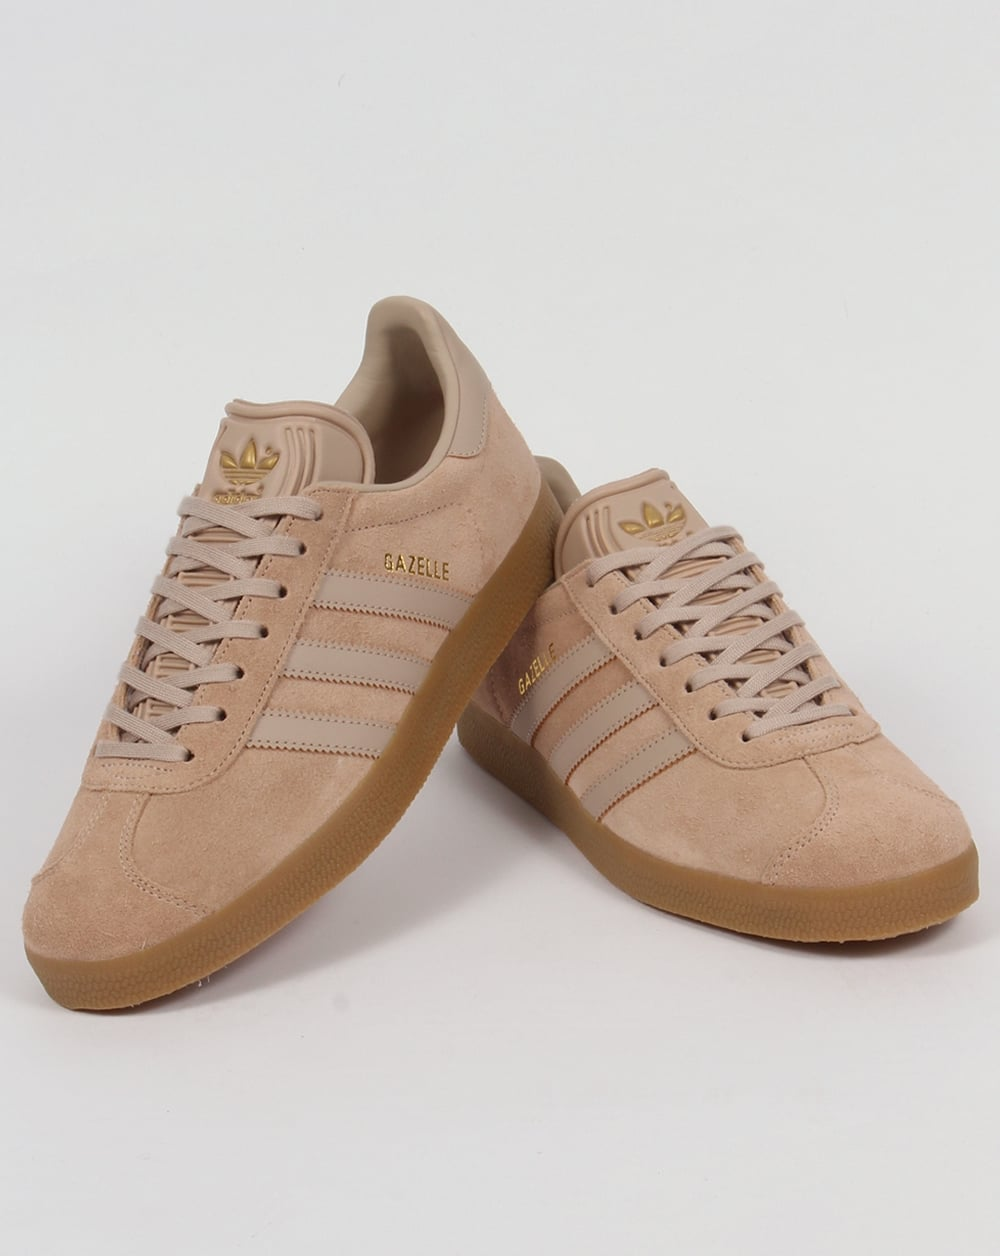 Infectar lb Ballena barba  Adidas Gazelle Trainers Clay Brown,originals,shoes,mens,sneakers